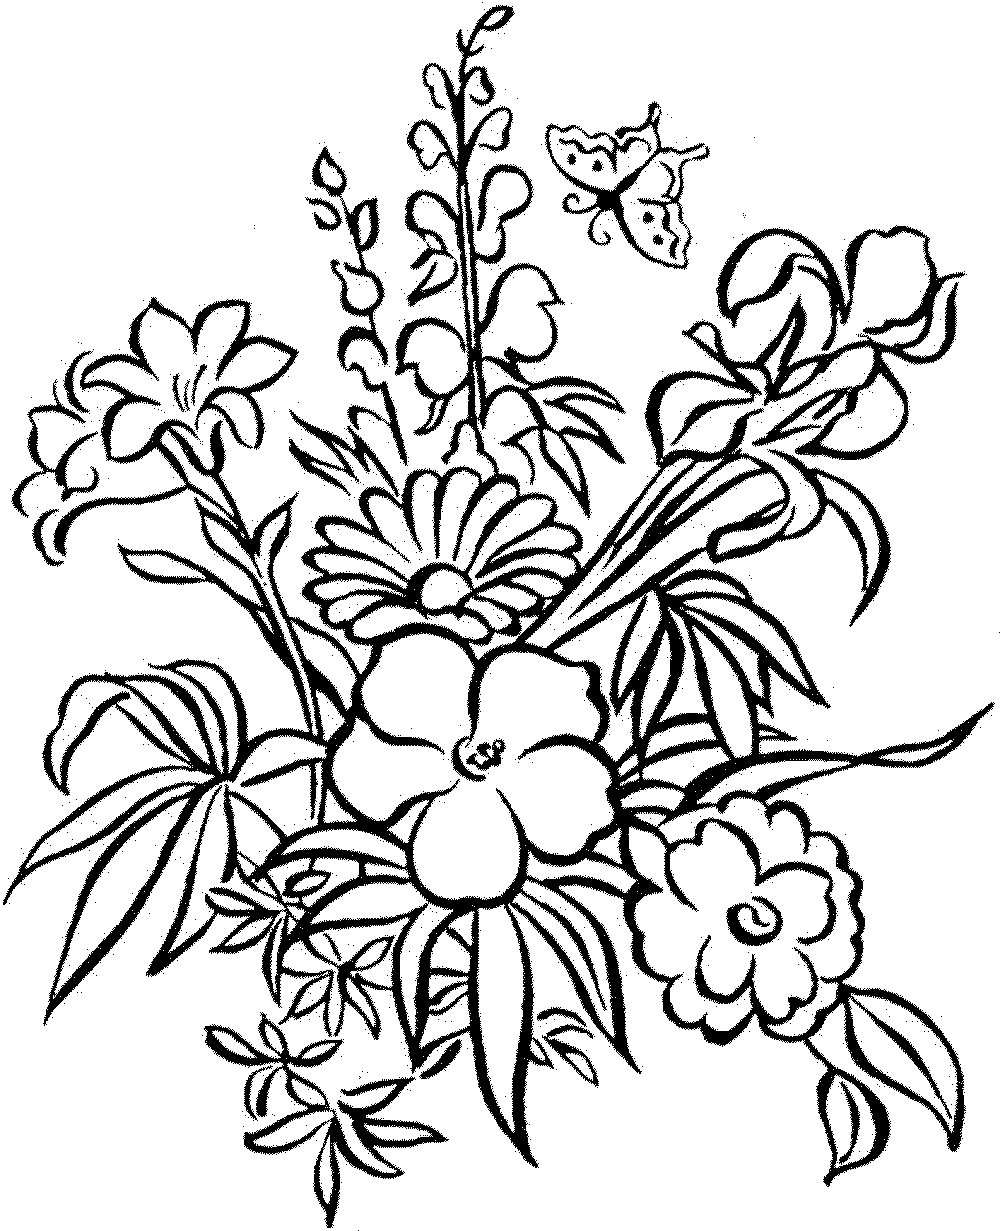 flower colouring pages to print free printable flower coloring pages for kids best flower pages colouring to print